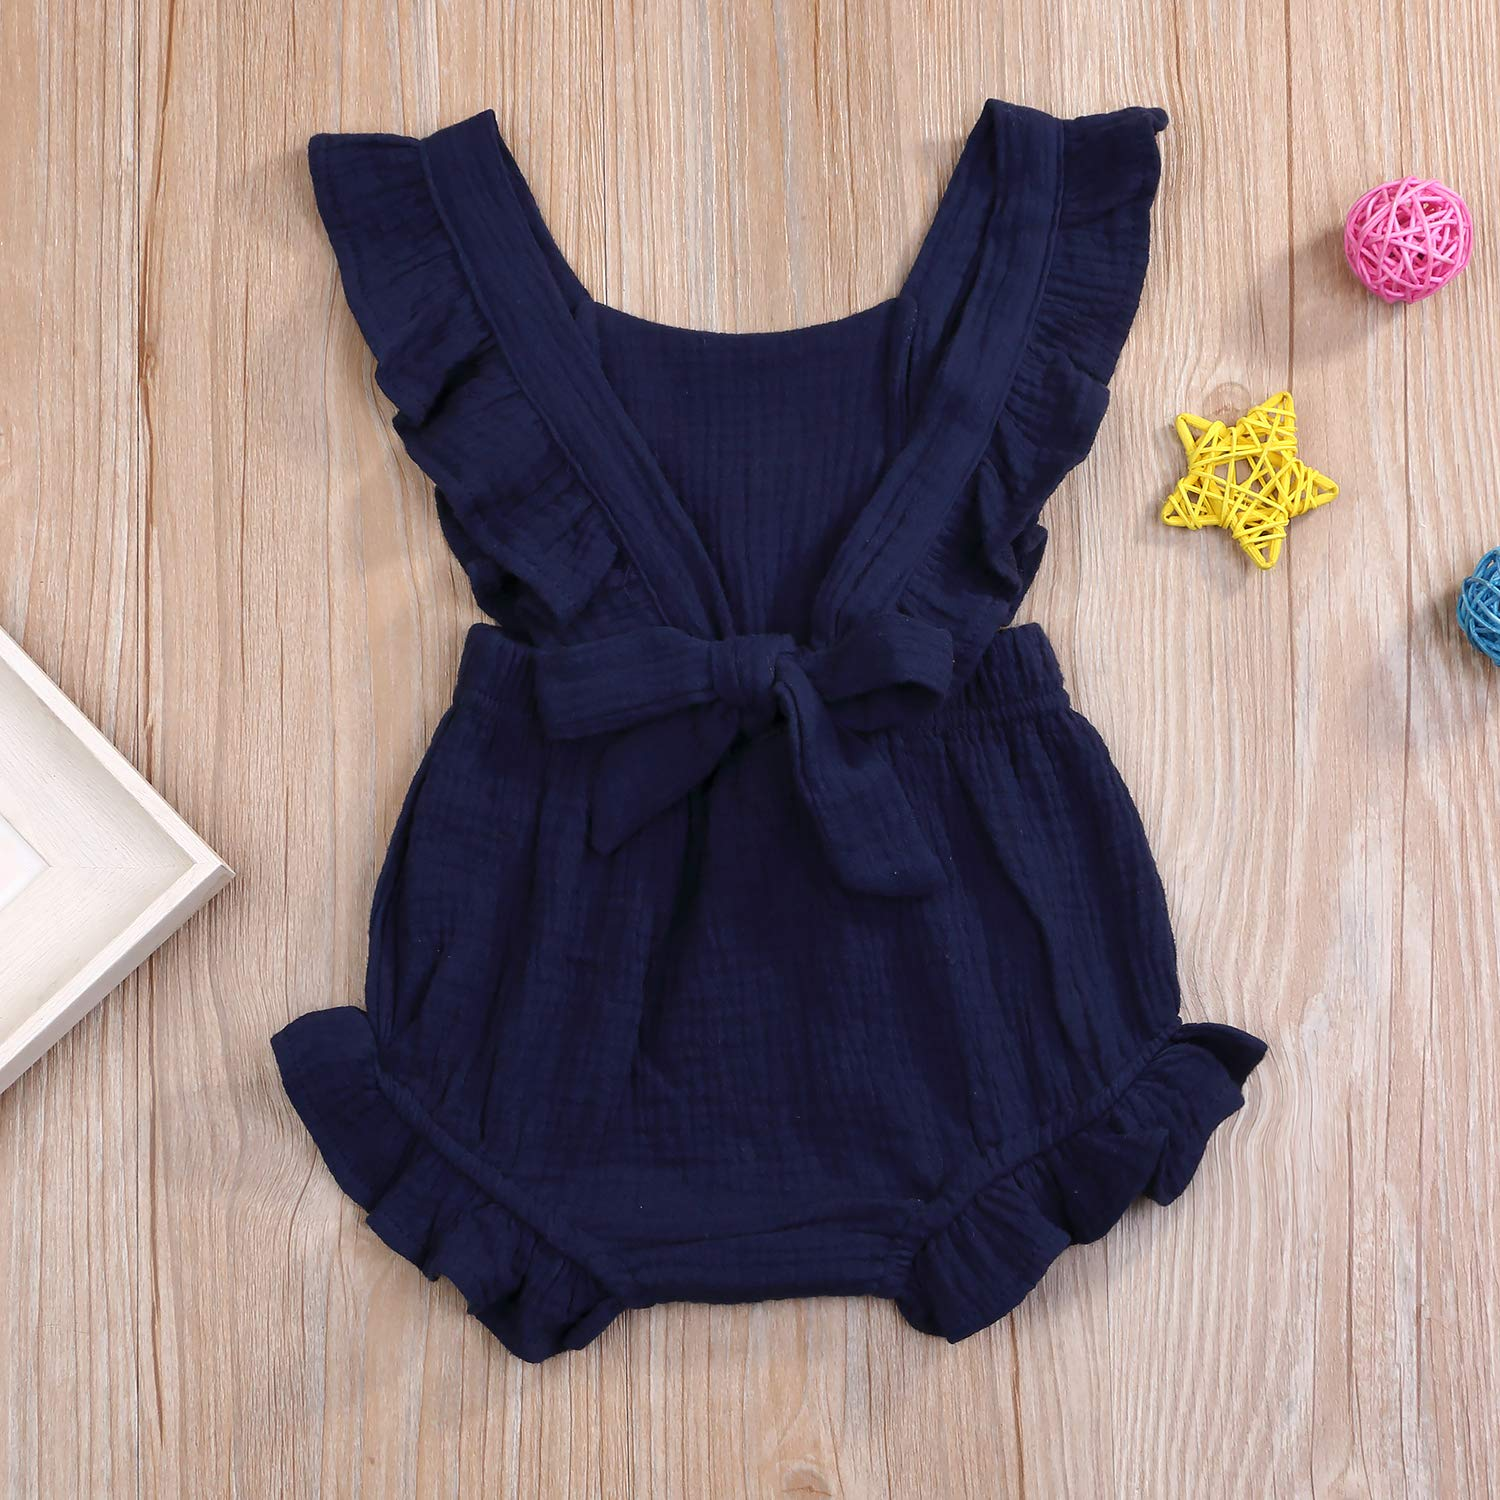 1050bda945e4 Amazon.com  YOUNGER TREE Toddler Baby Girl Ruffled Collar Sleeveless Romper  Jumpsuit Clothes  Clothing